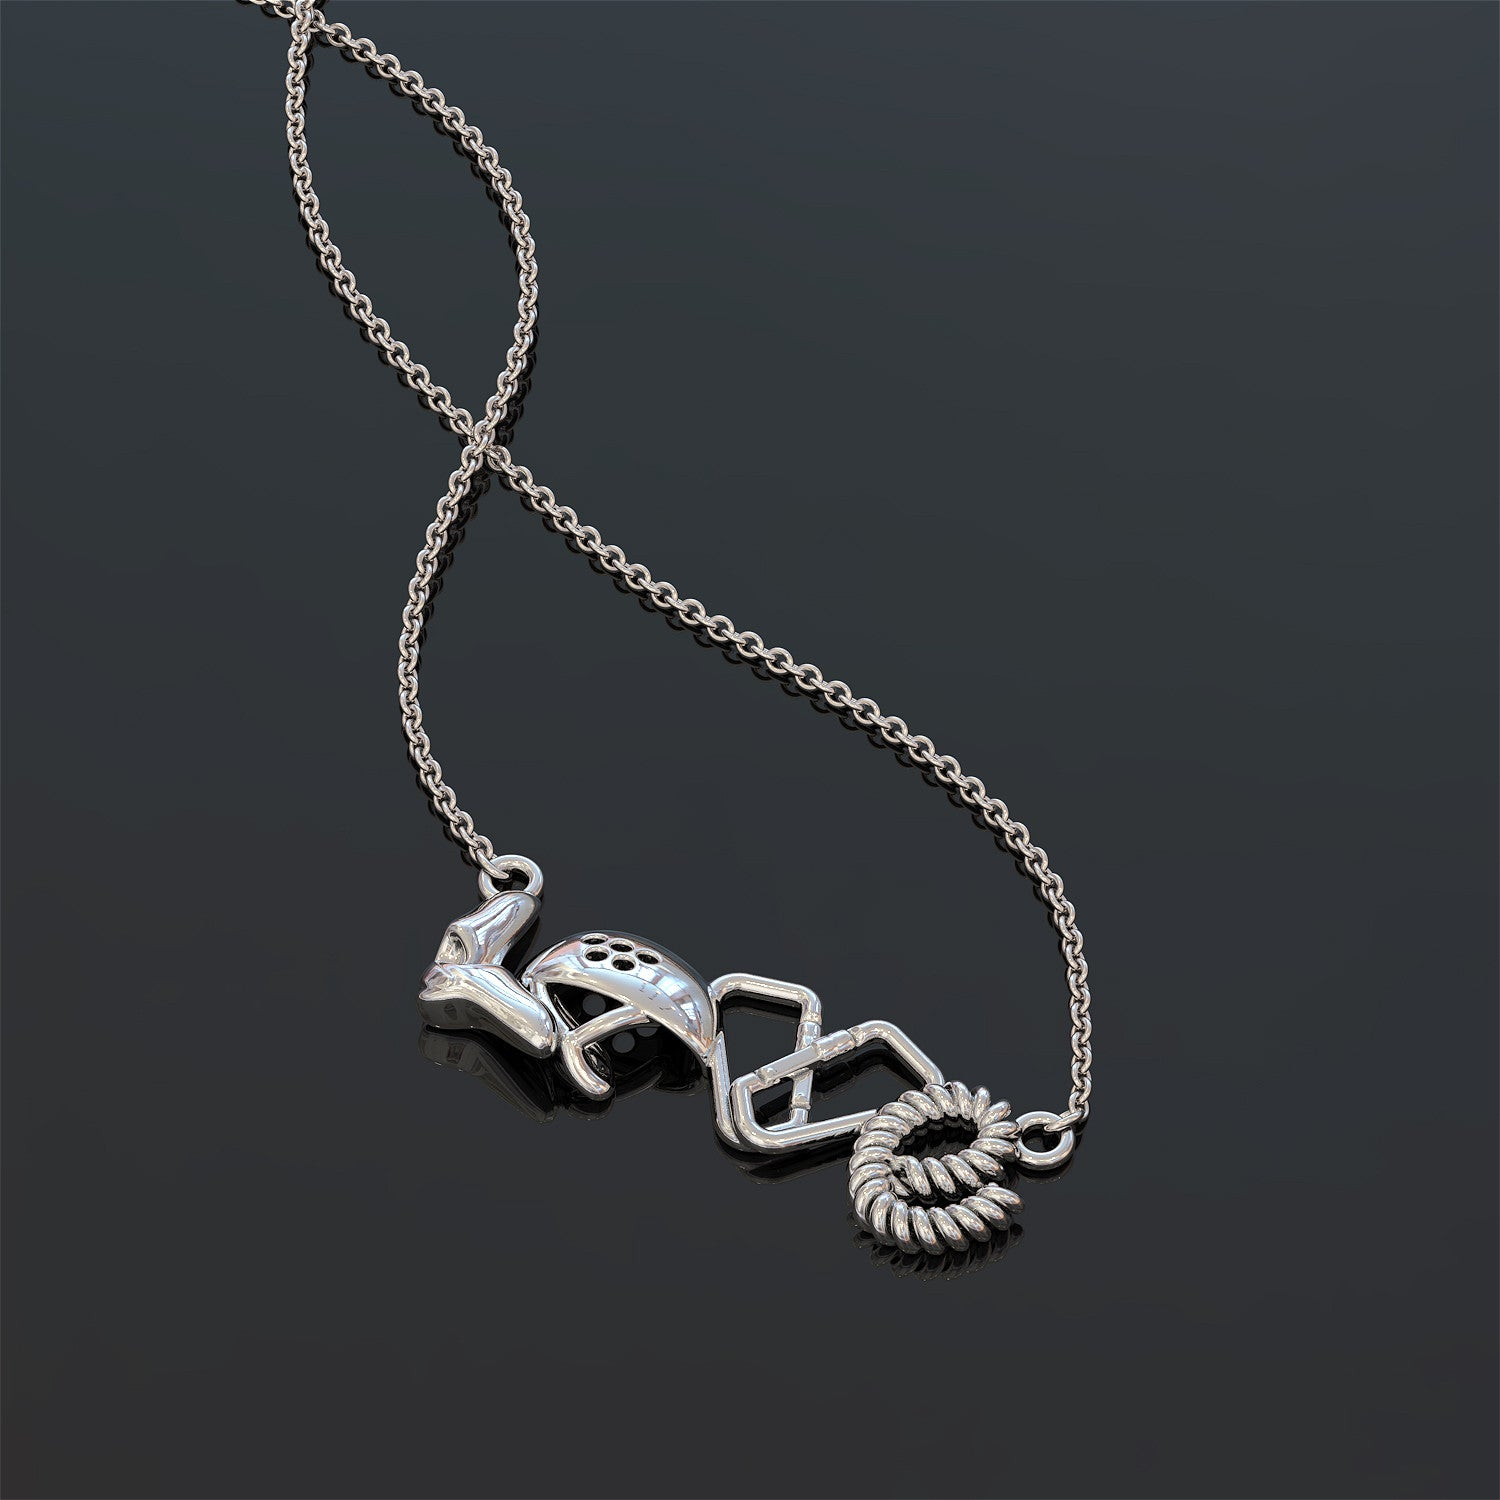 Rock Climbing Love Necklace